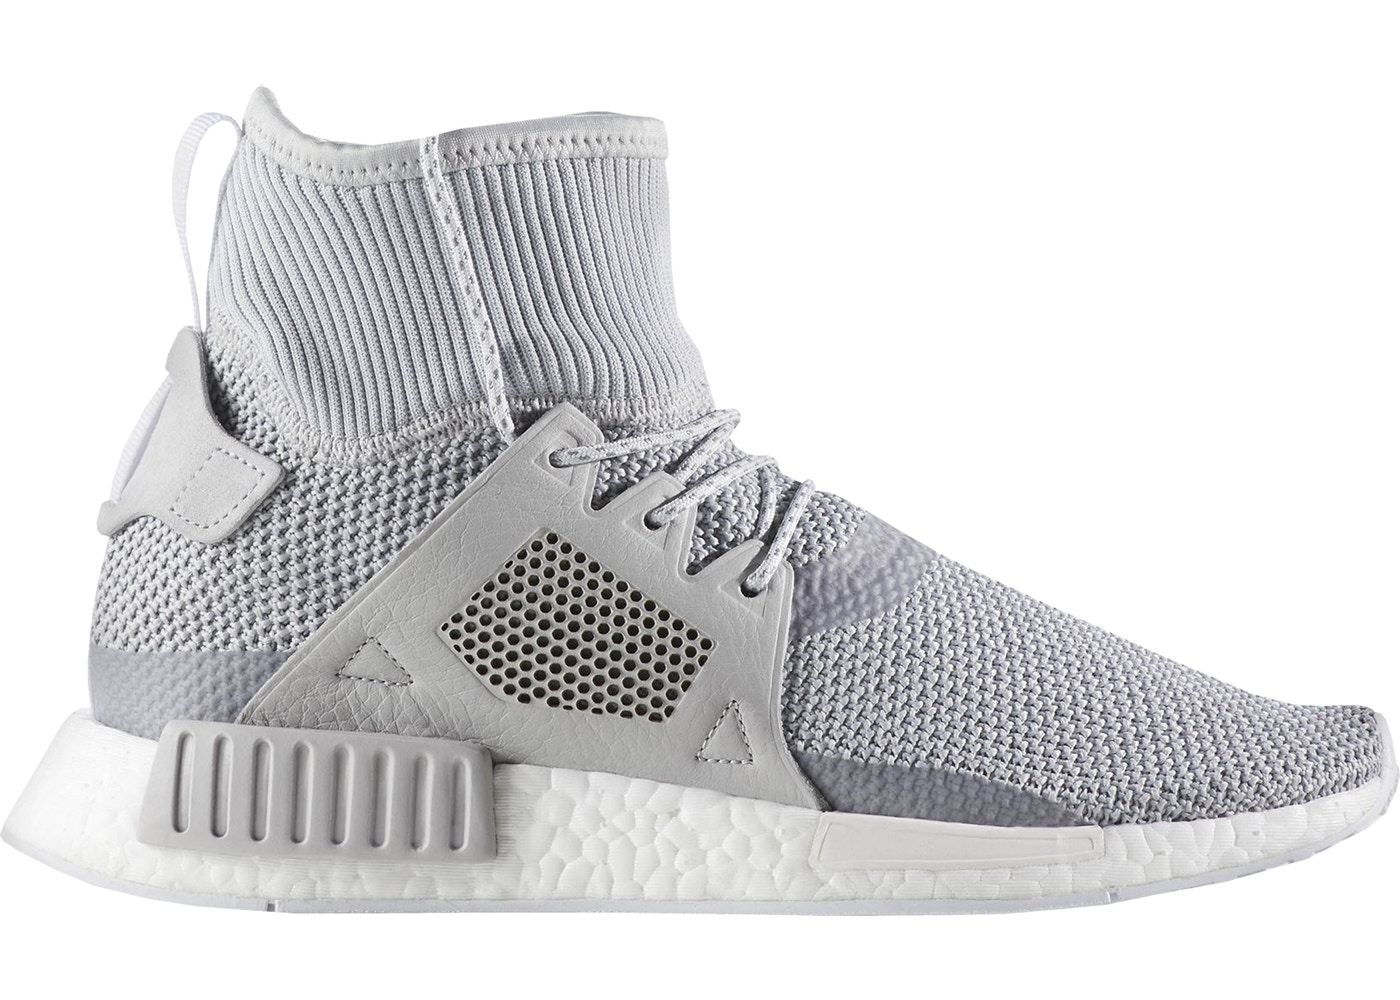 a181d73c37746 adidas NMD XR1 Adventure Pack Grey Two - BZ0633